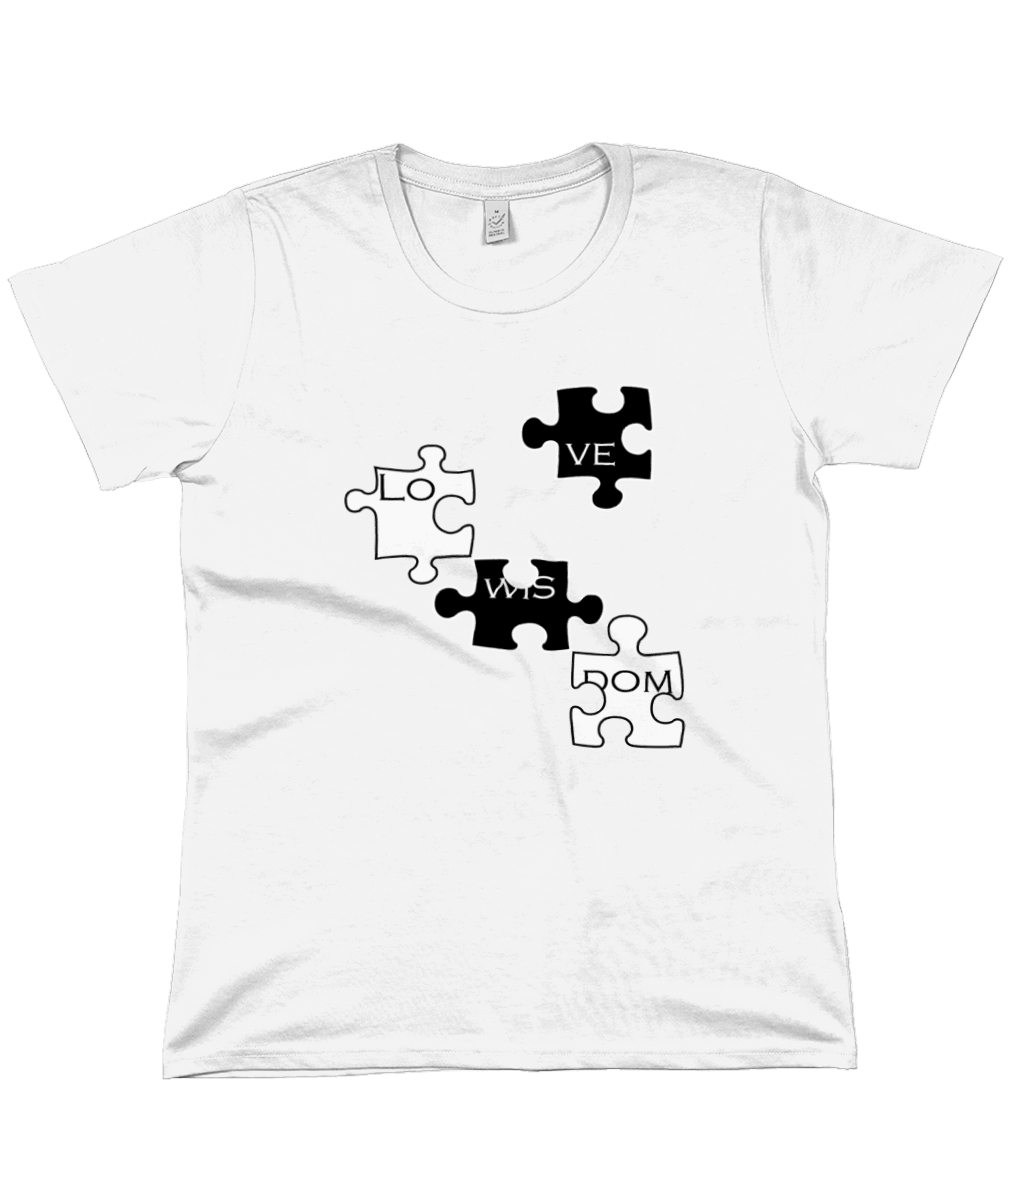 Life puzzle - T-Shirt Relaxed Fit